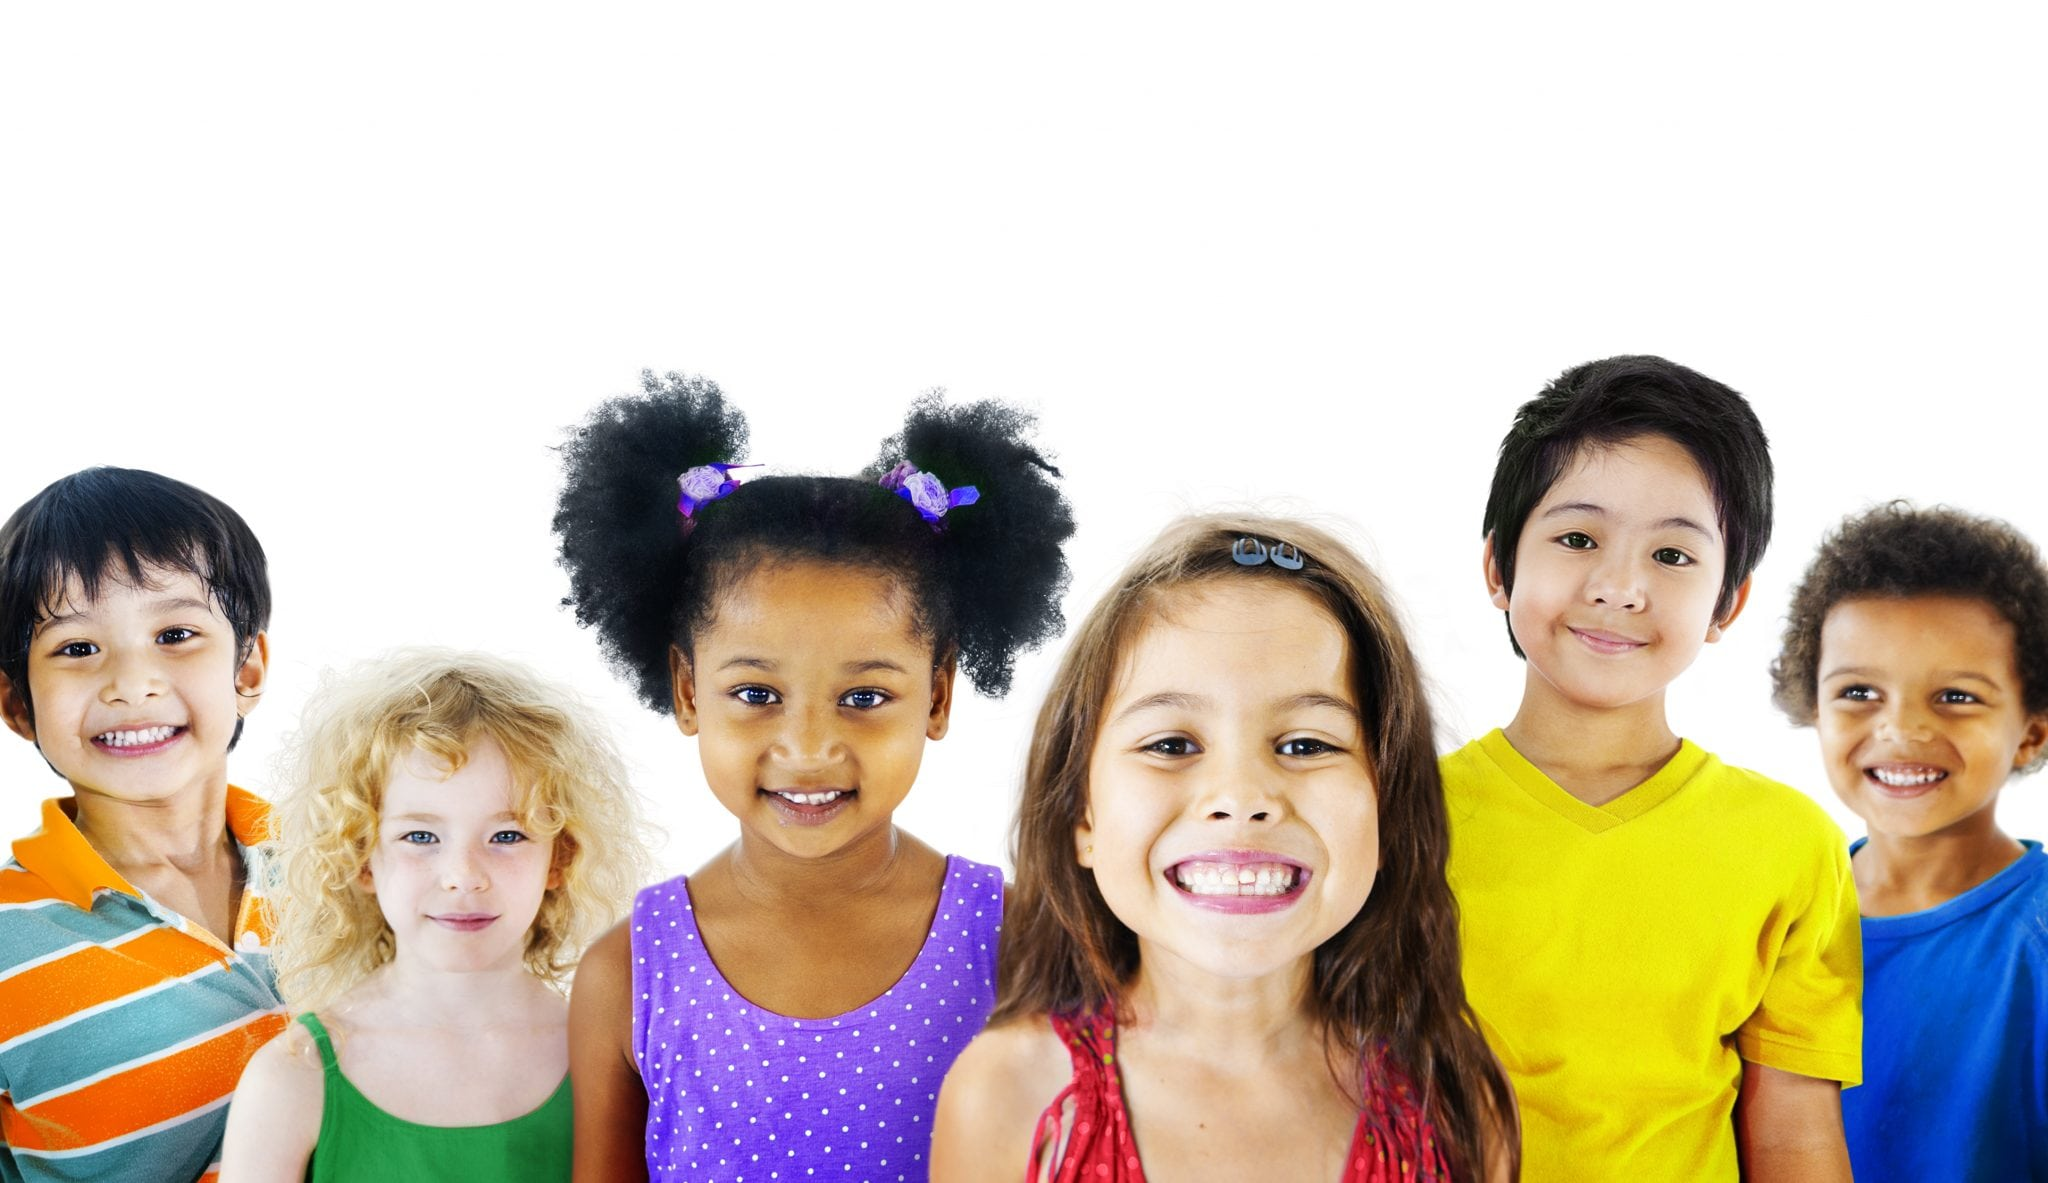 Group of diverse children smiling